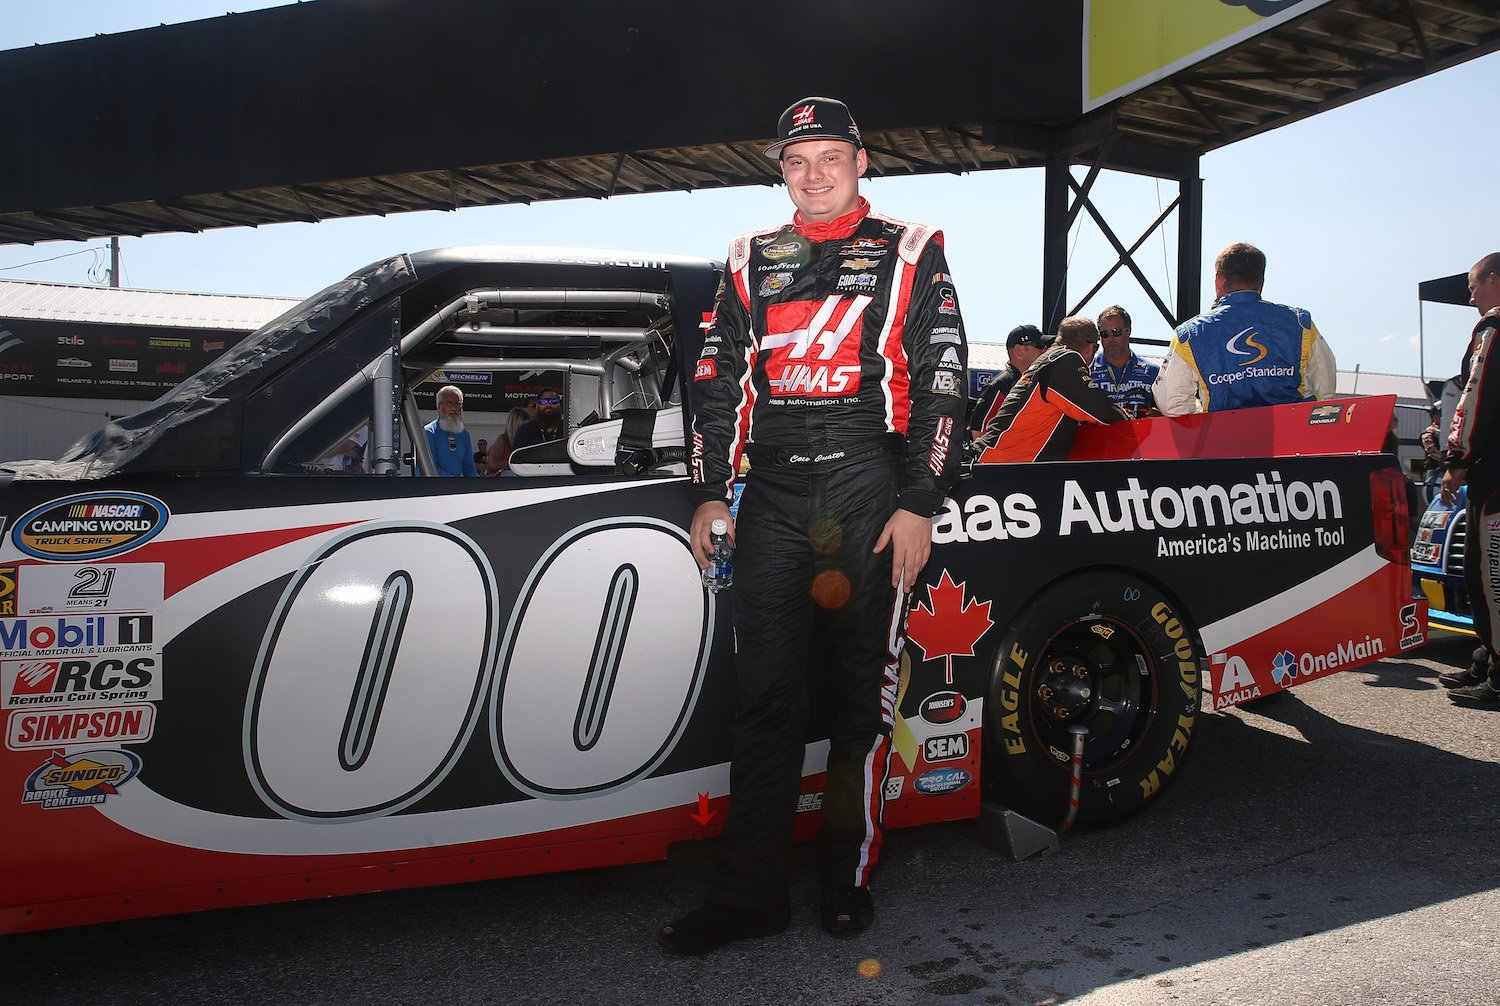 BOWMANVILLE, ON - SEPTEMBER 04: Cole Custer, driver of the #00 Haas Automation Chevrolet, poses beside his car before the start of teh race at Canadian Tire Motorsport Park on September 4, 2016 in Bowmanville, Canada. (Photo by Tom Szczerbowski/NASCAR/NASCAR via Getty Images)